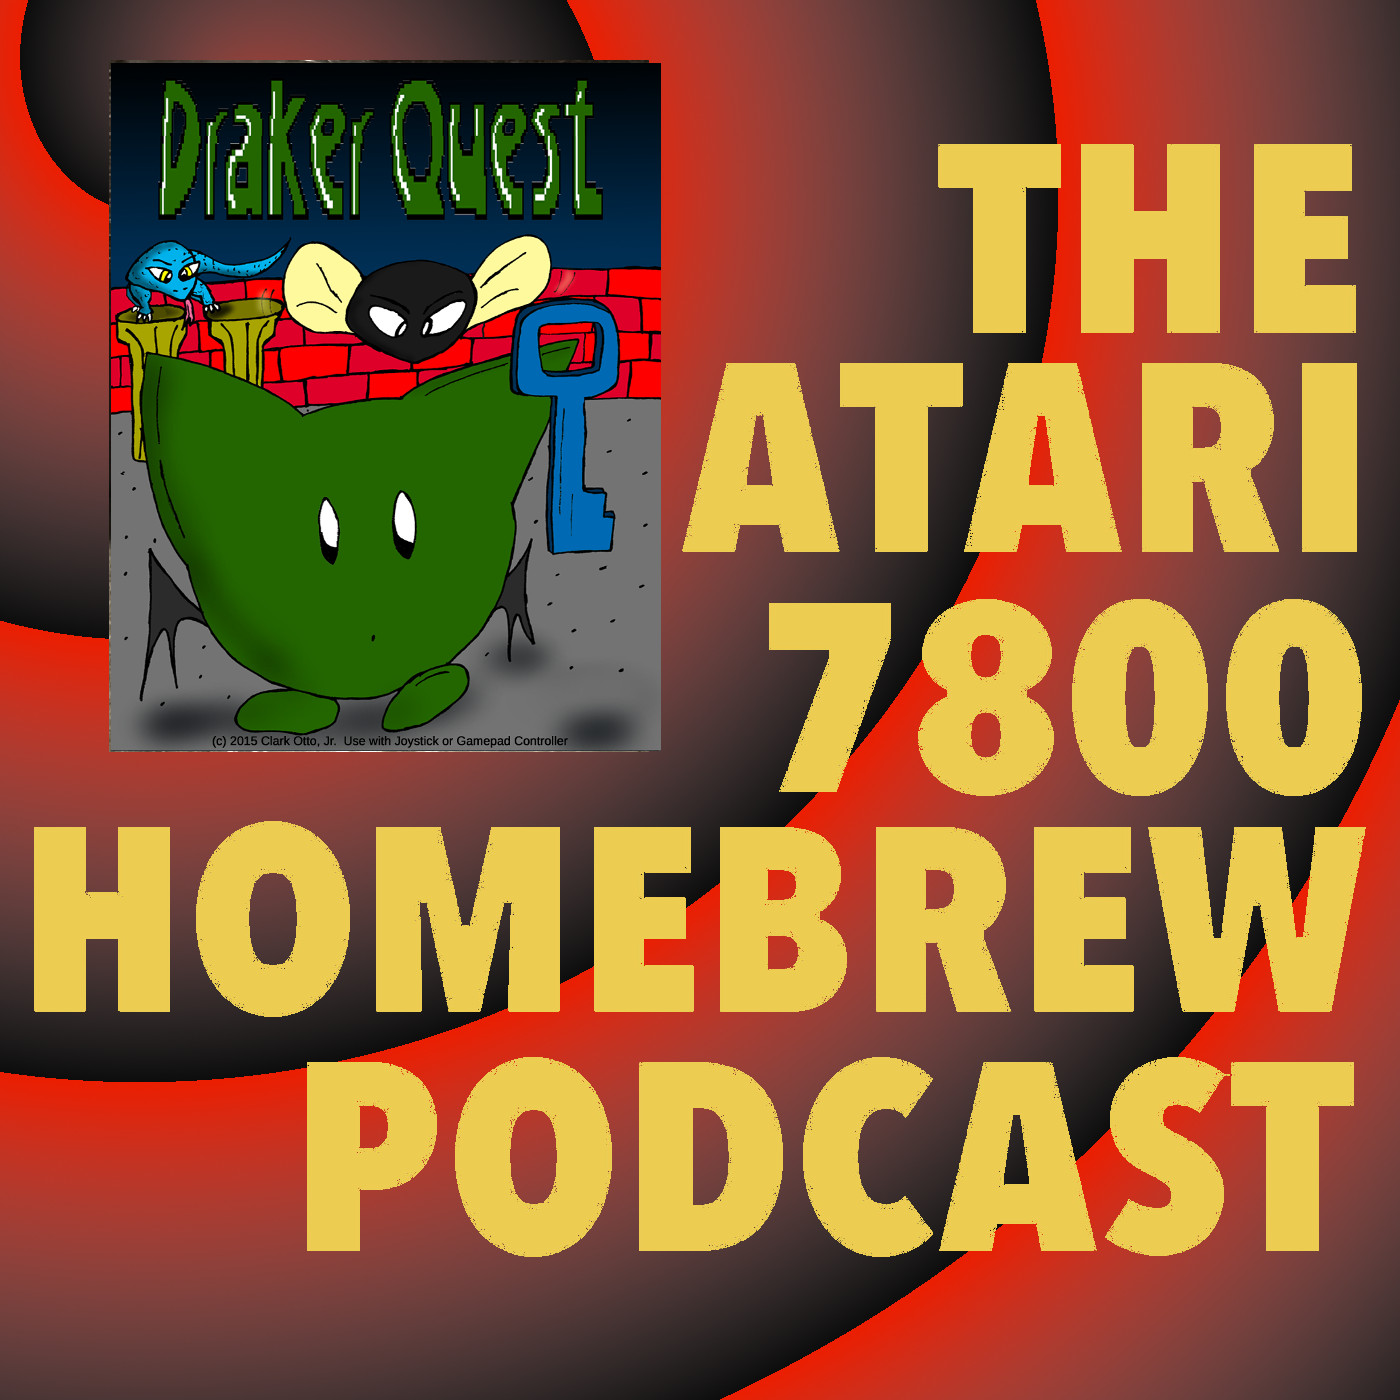 Episode 43: Draker Quest